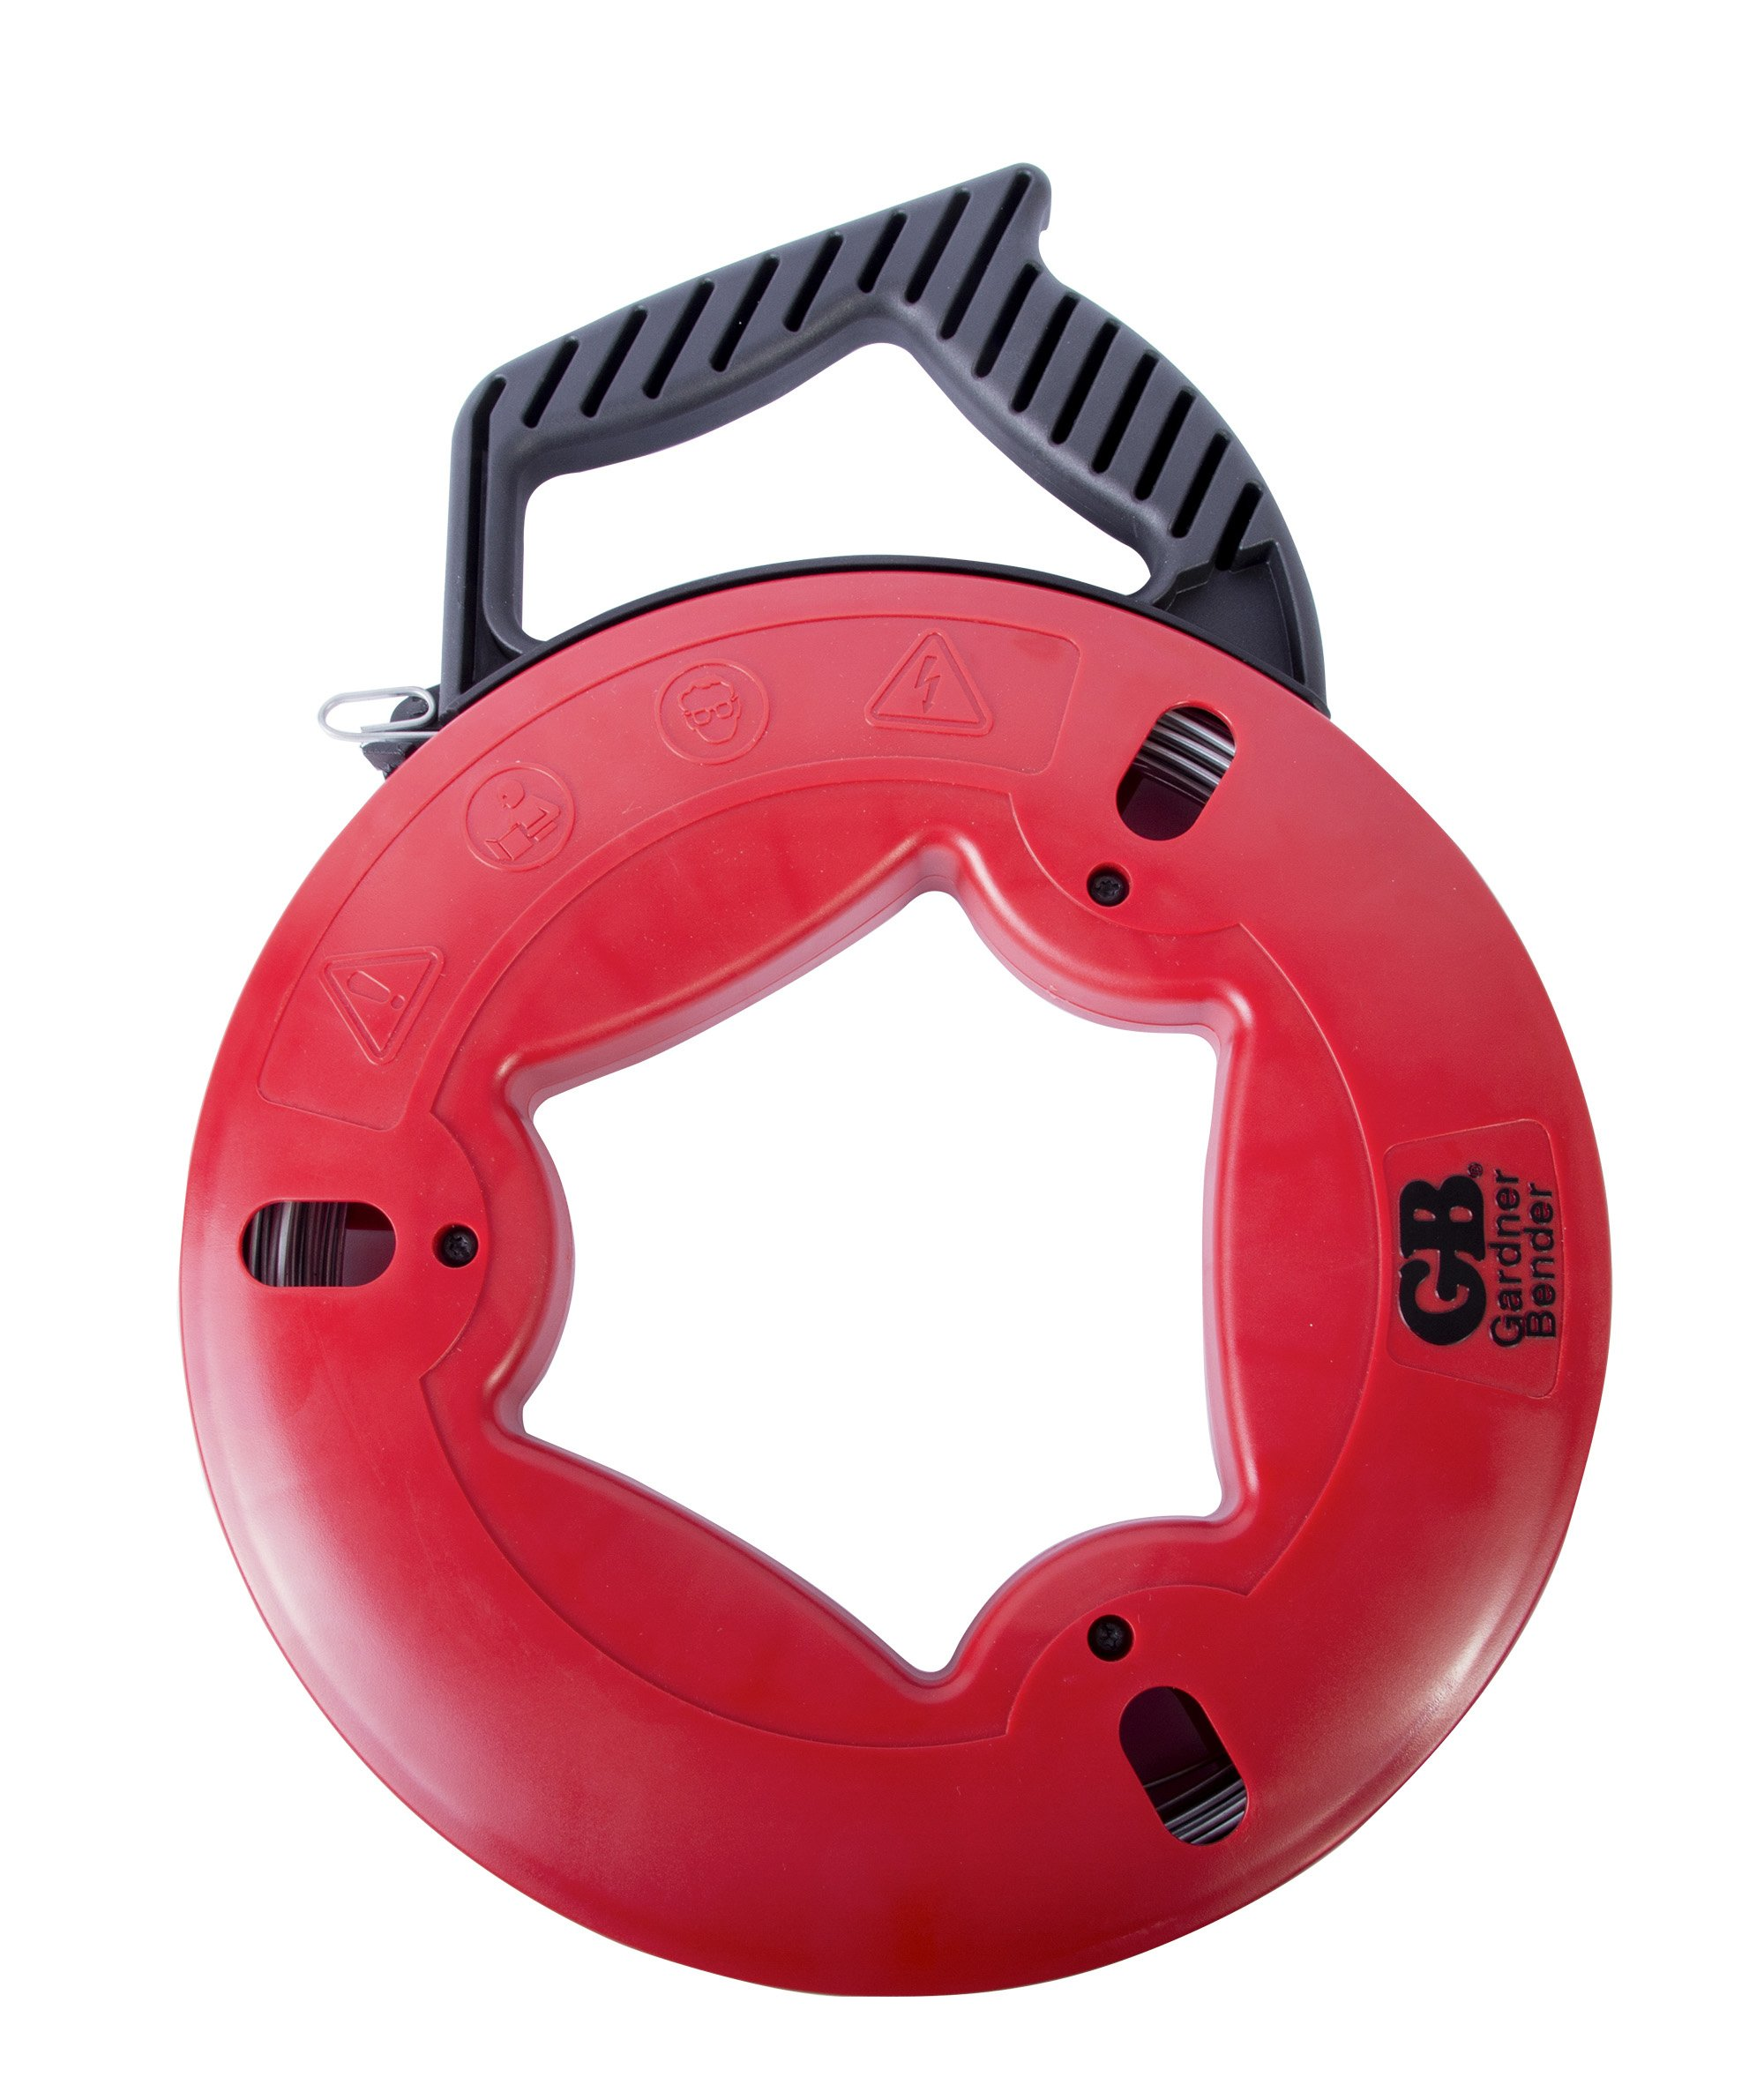 Gardner Bender FTS-250R Fish Tape, 250 ft., Plated Carbon Steel, UpperHand with Rubber Grip